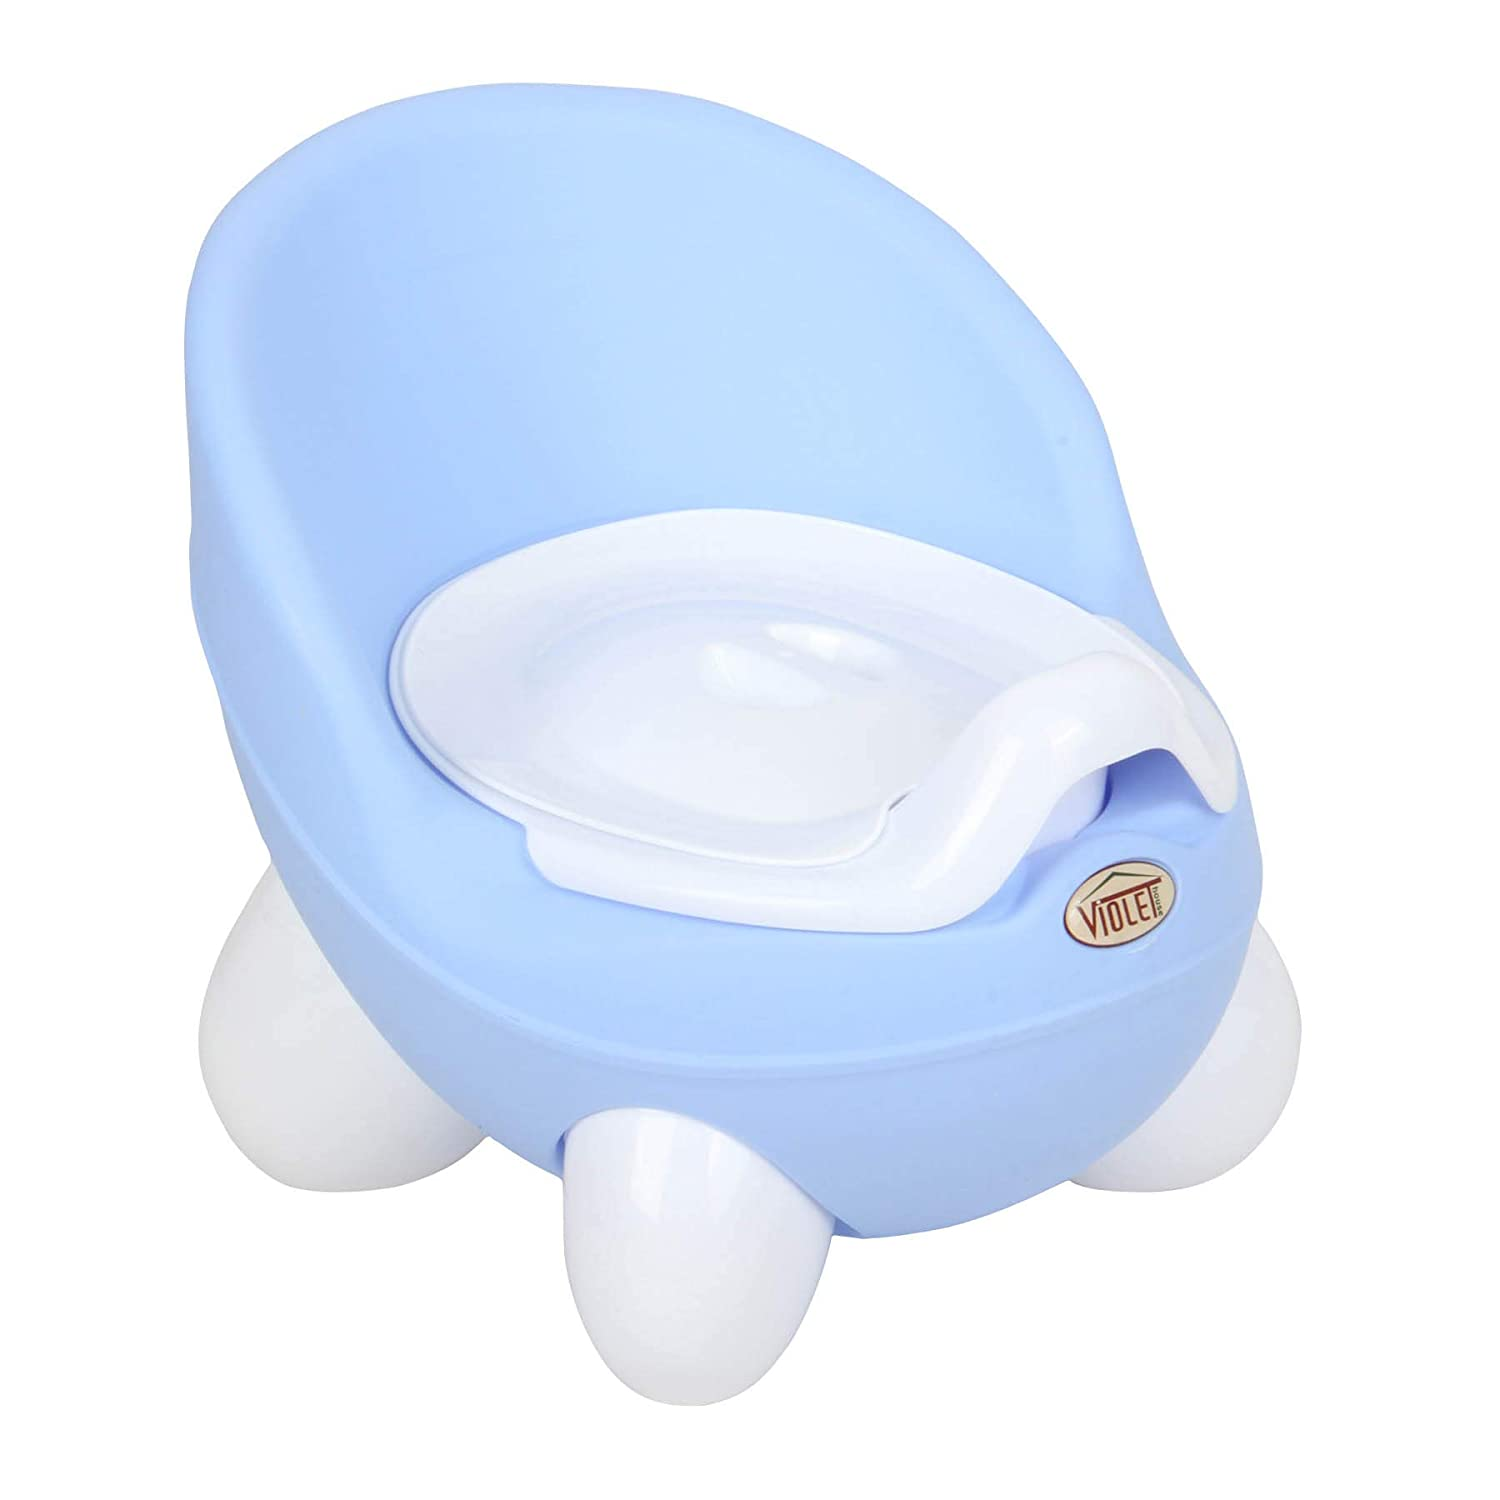 VIOLET House Panda Baby Potty Trainer Plastic Easy Care Blue